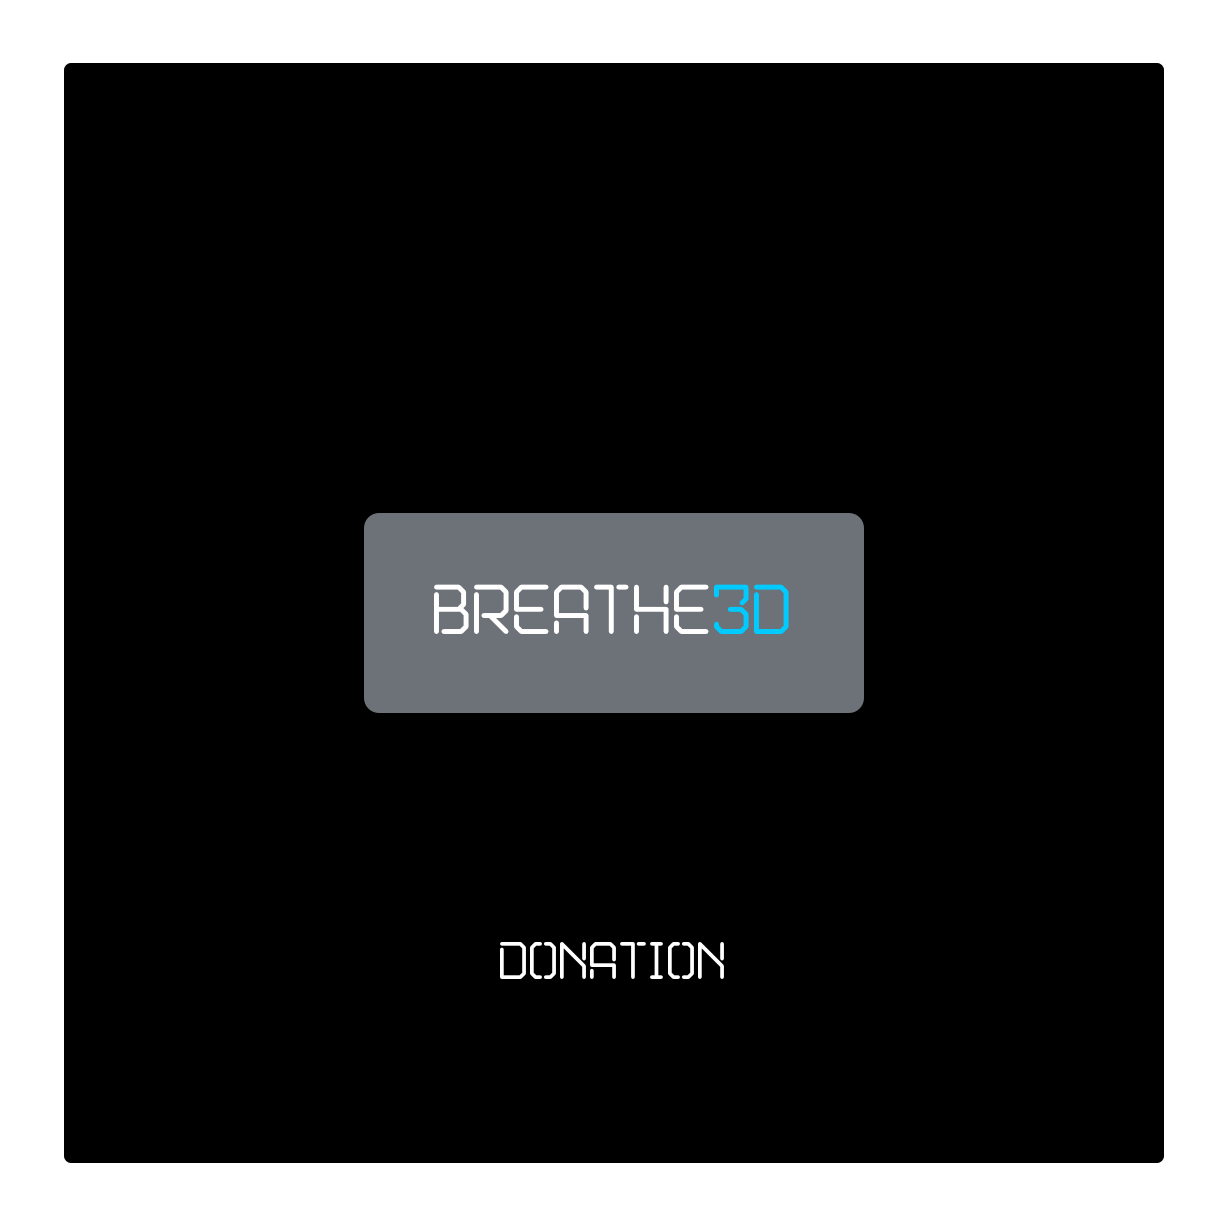 Breathe3D Mask: Exclusive 3D Donation Colors